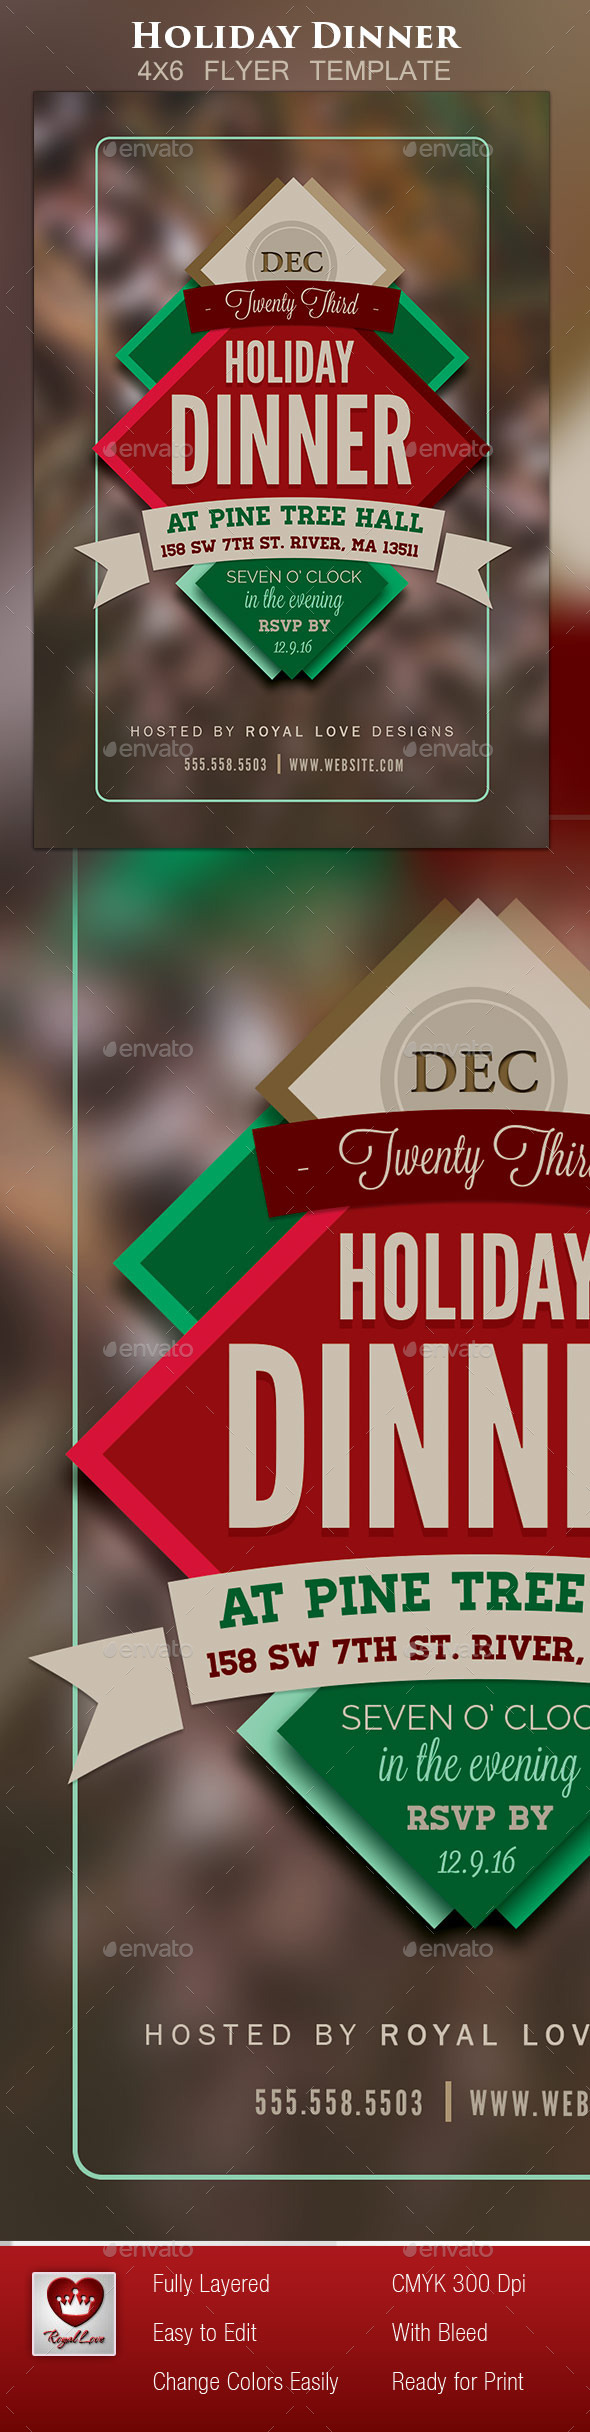 Holiday Dinner Flyer II